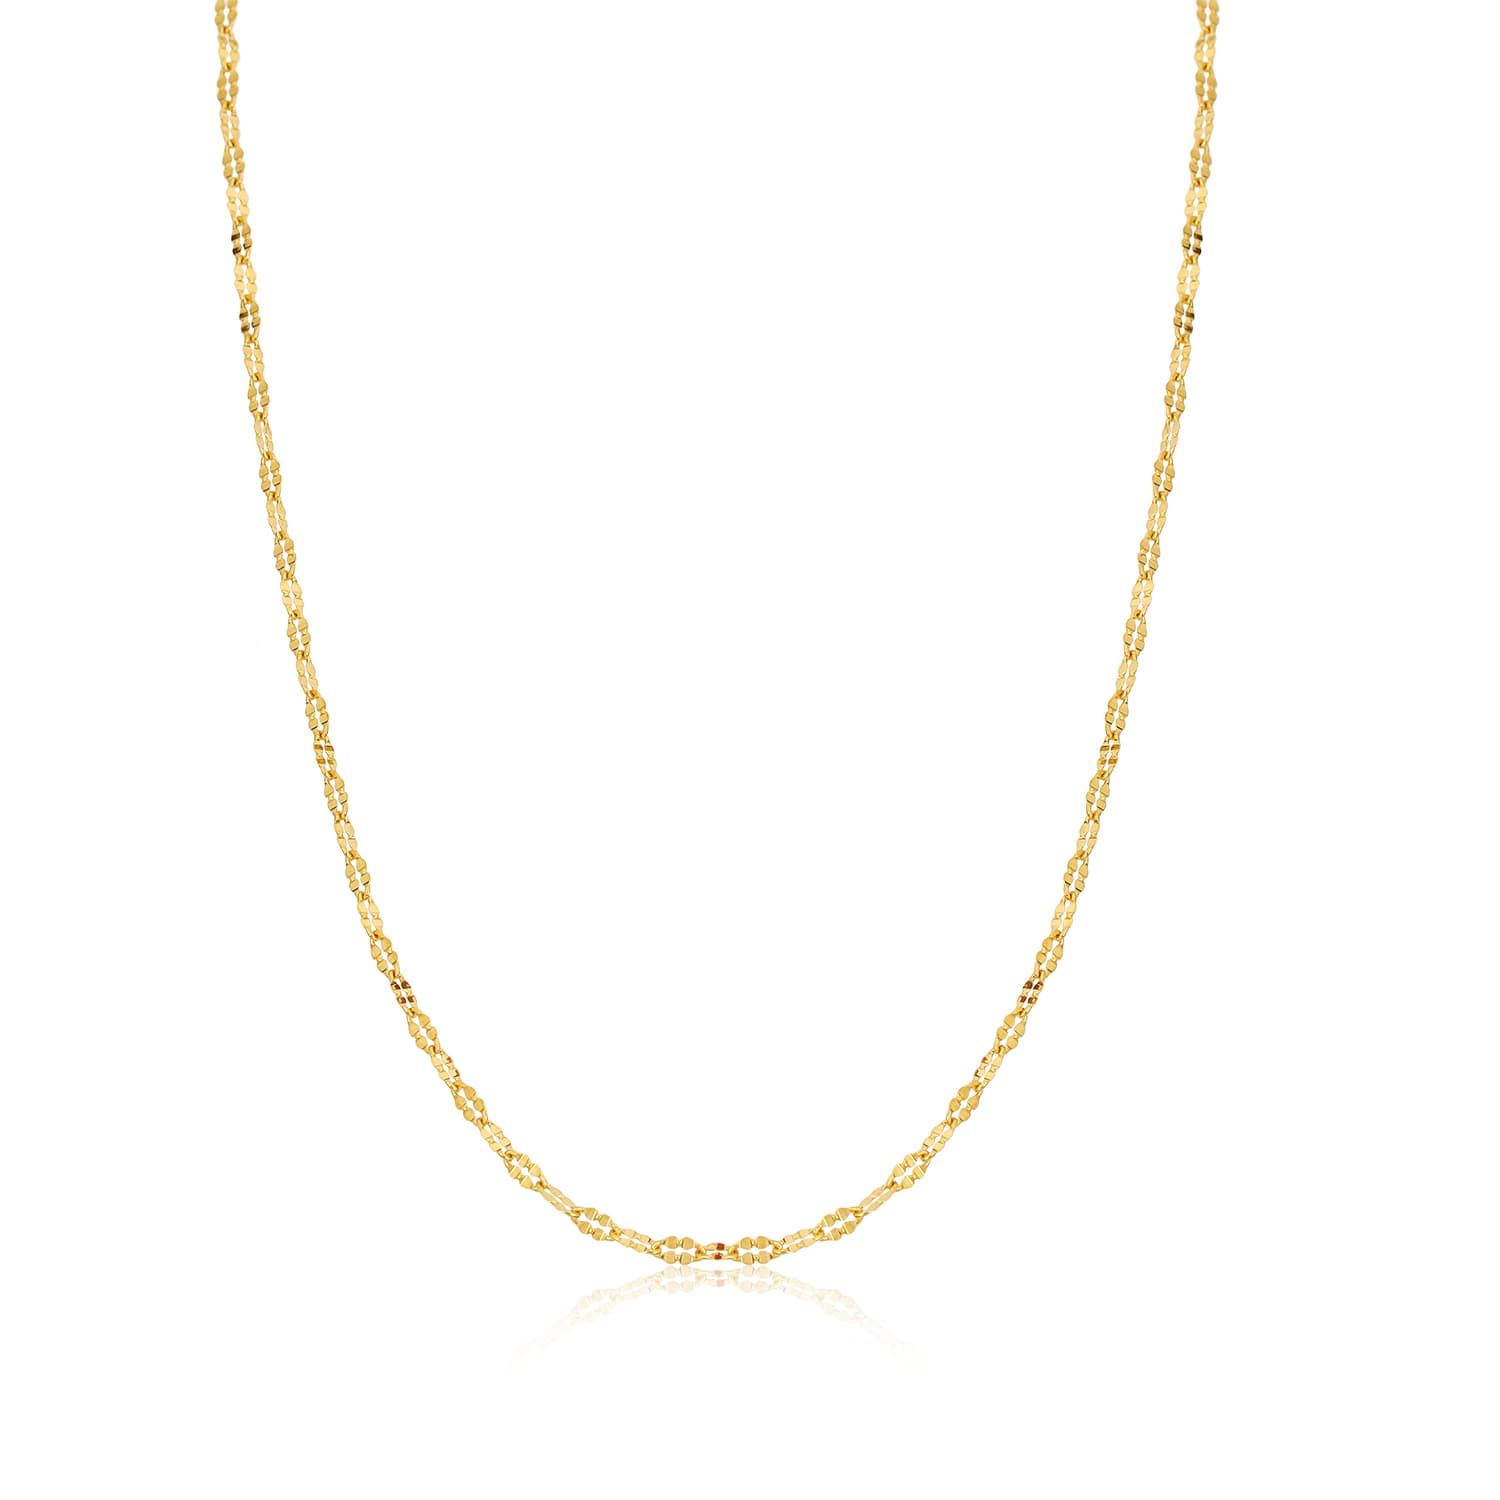 24K real gold chain models on silver